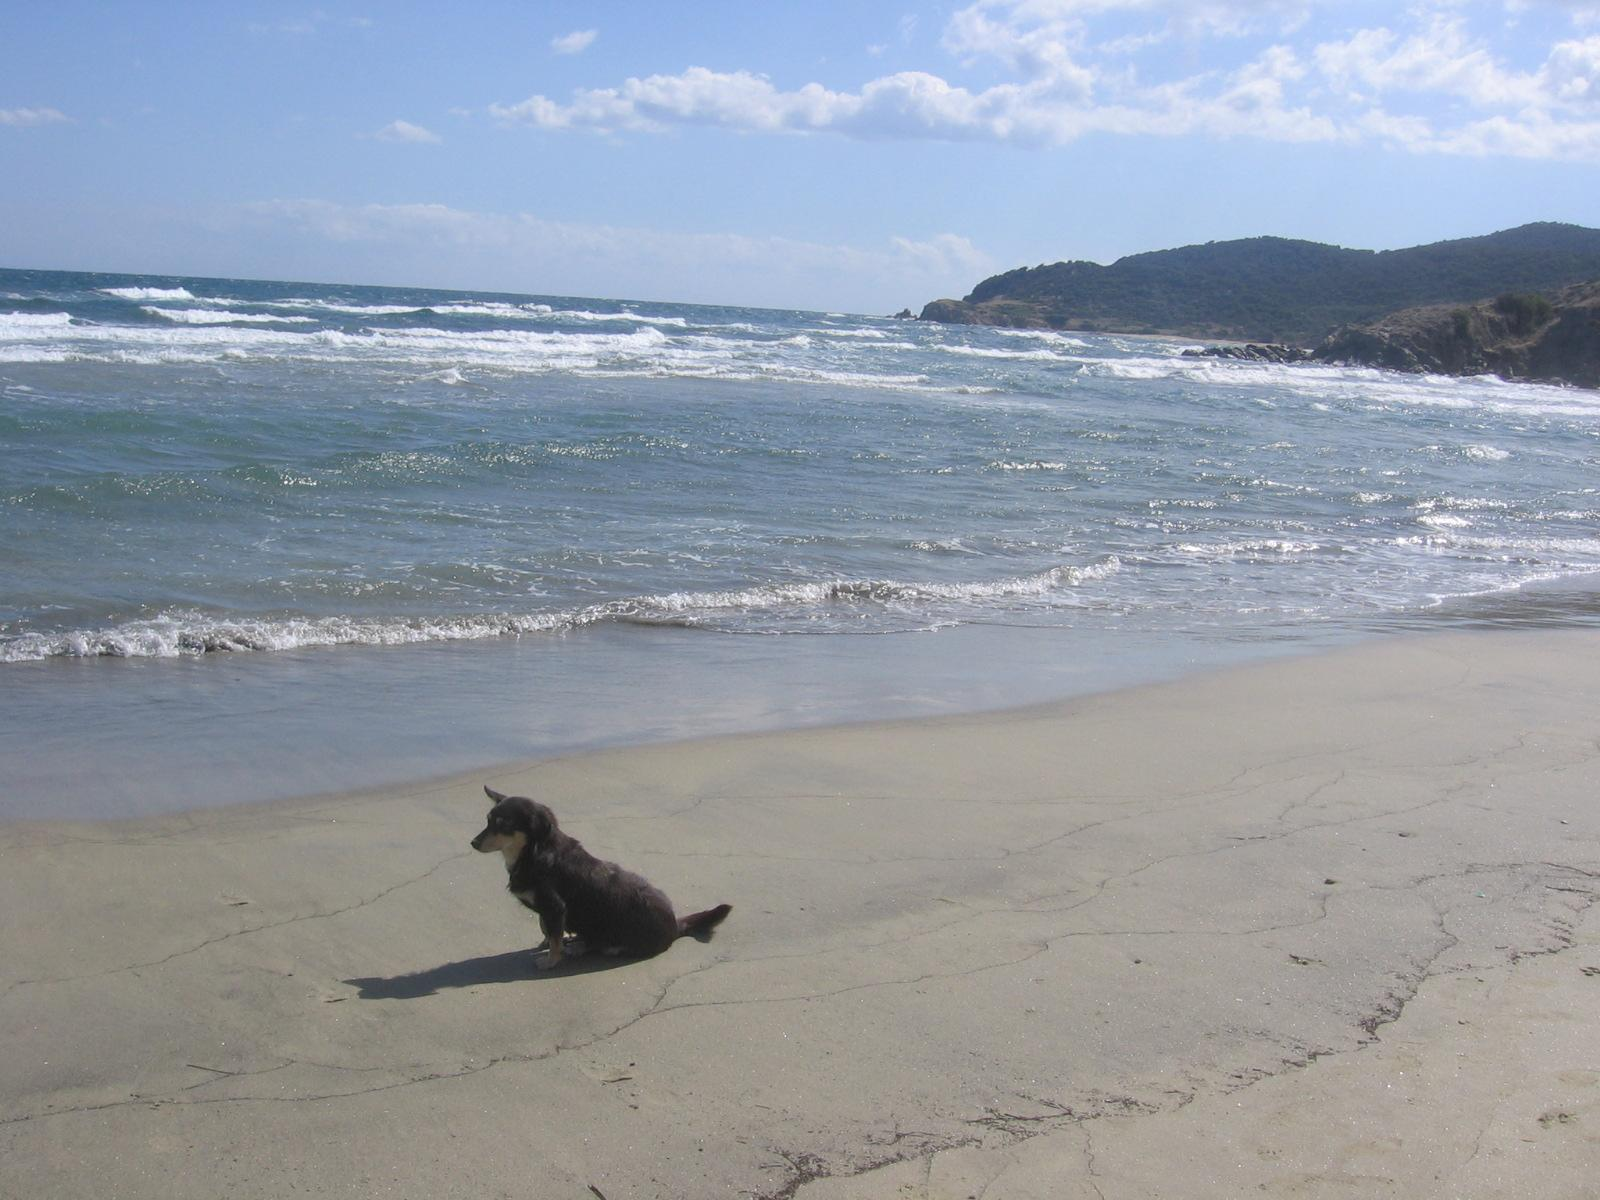 Kormi (Blacky) the lonely mutt on the Greek beach